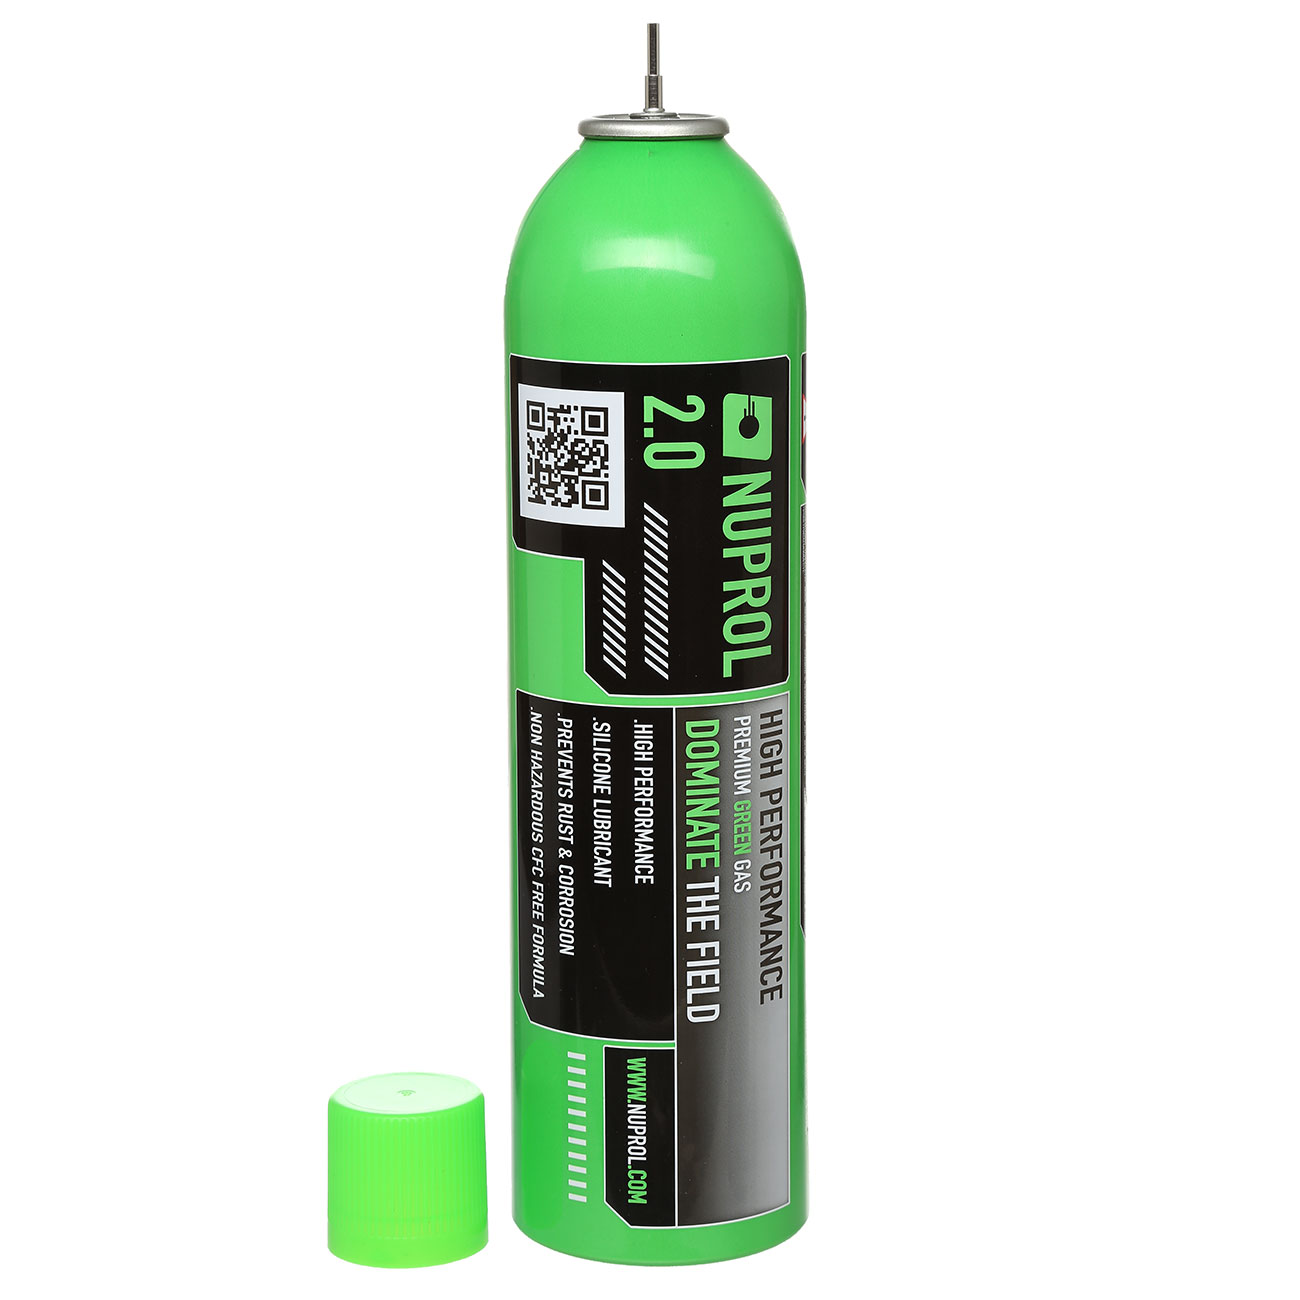 Nuprol 2.0 High Performance Premium Green Gas 420ml 1